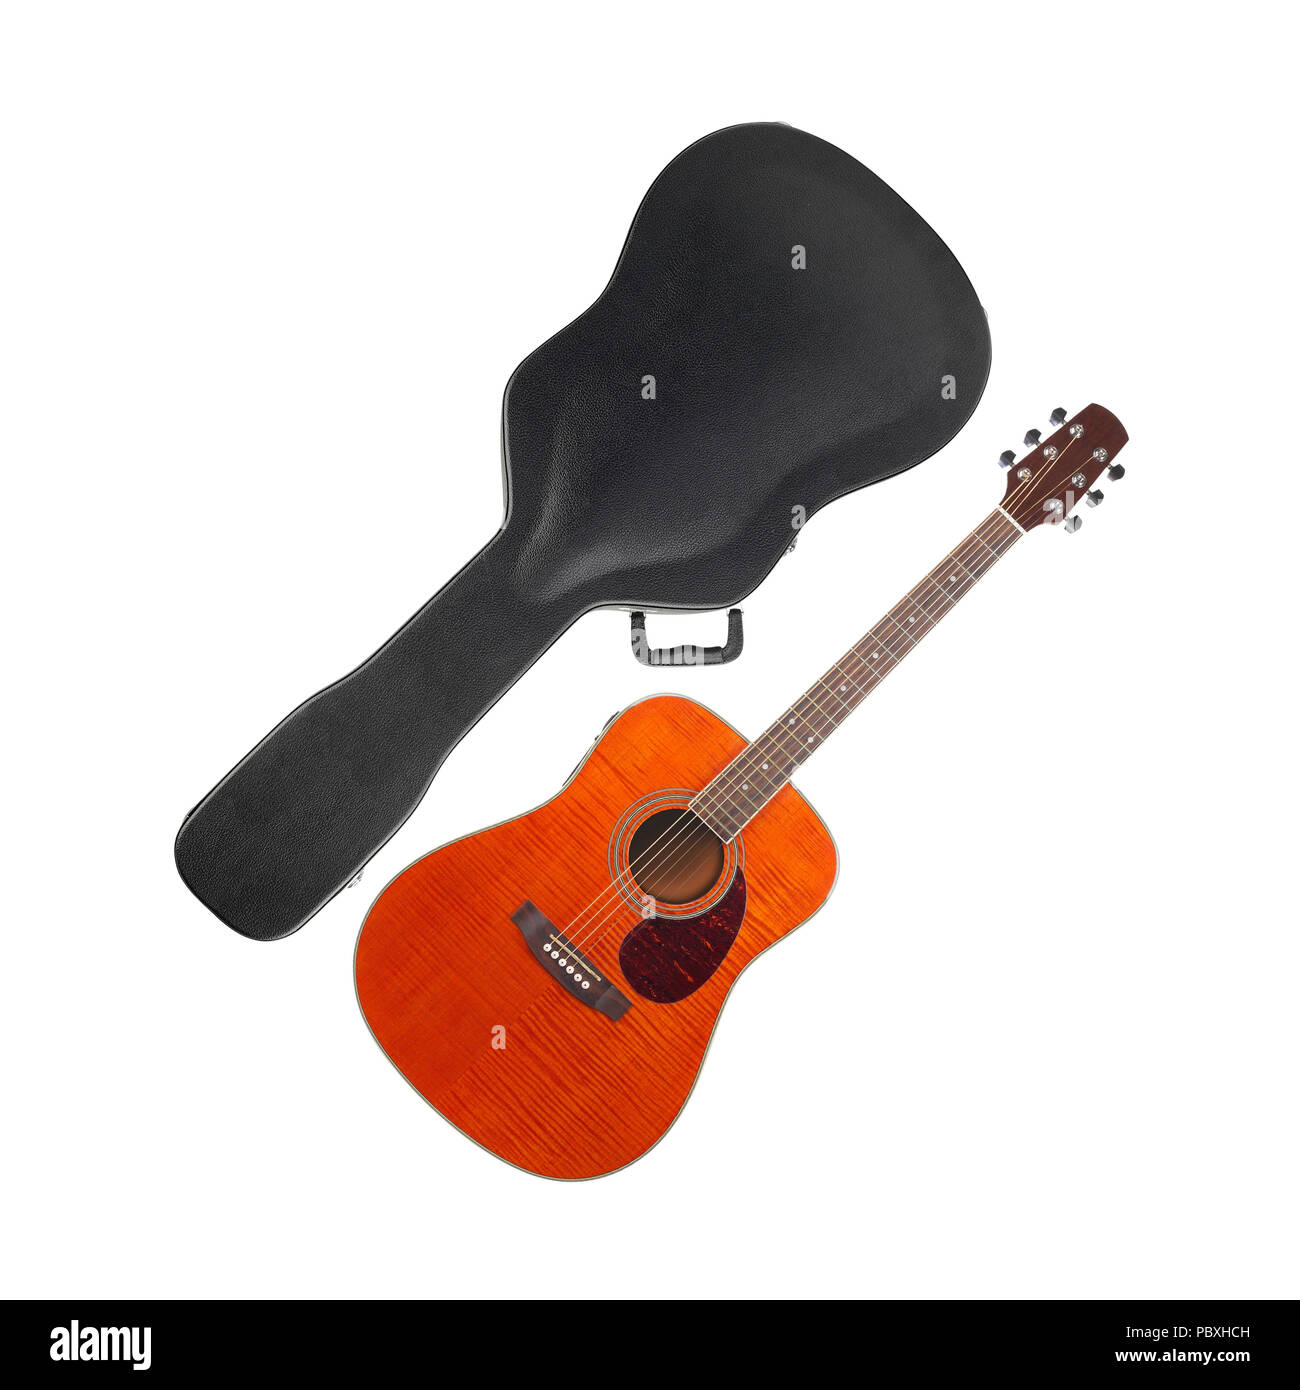 Musical instrument - Orange Flame maple western guitar hard case isolated on a white background. Stock Photo